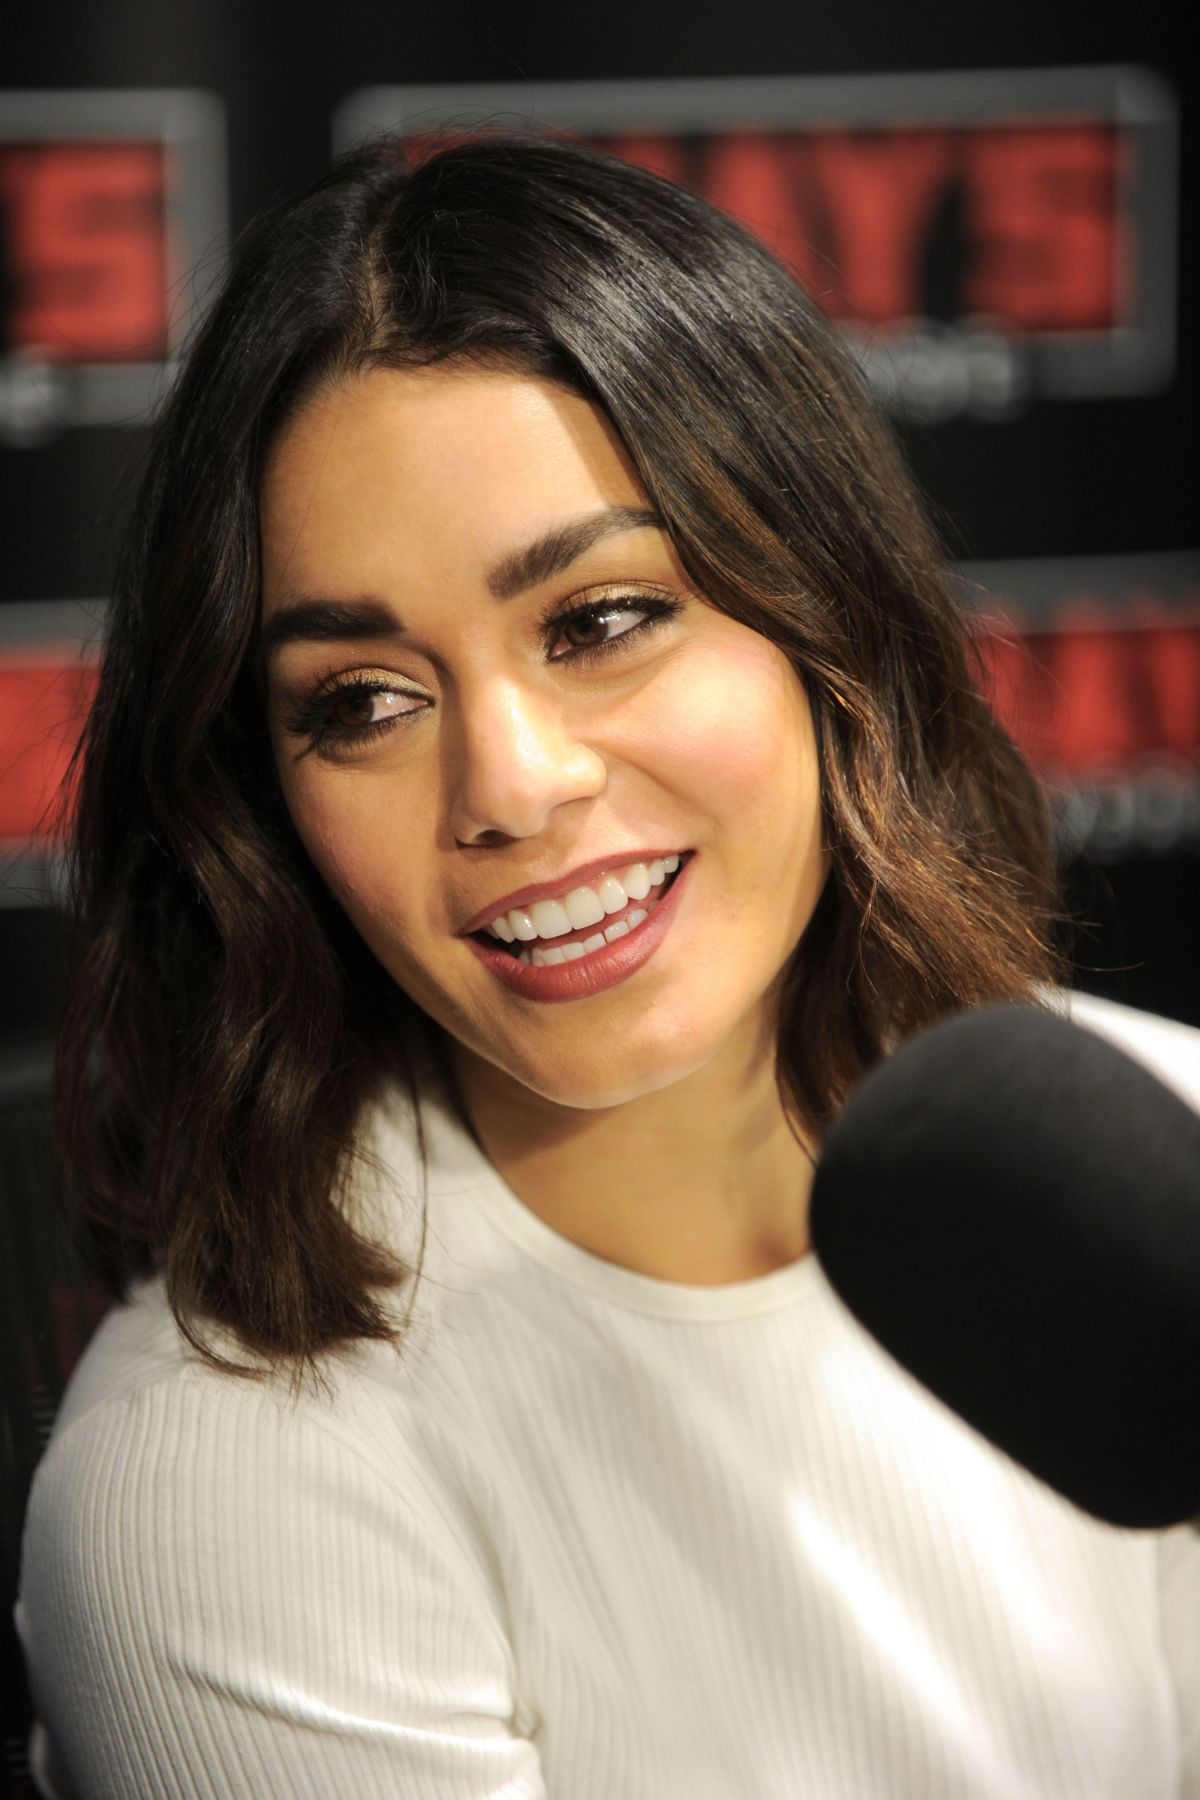 VANESSA HUDGENS at SirisXM Radio in New York 01/30/2017 ... Vanessa Hudgens